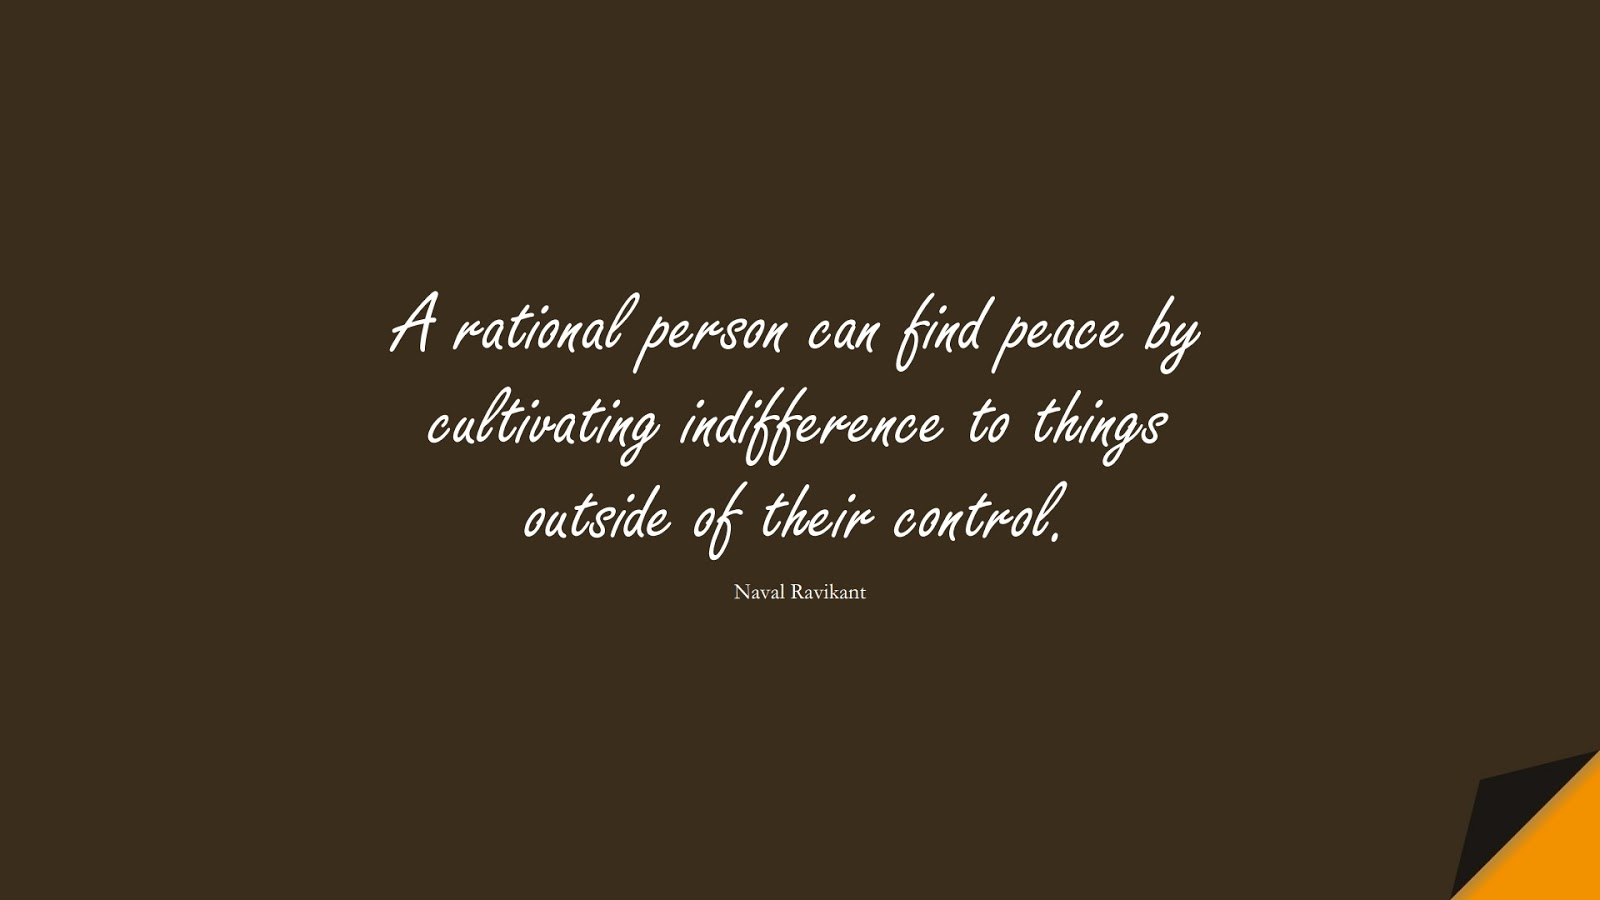 A rational person can find peace by cultivating indifference to things outside of their control. (Naval Ravikant);  #AnxietyQuotes